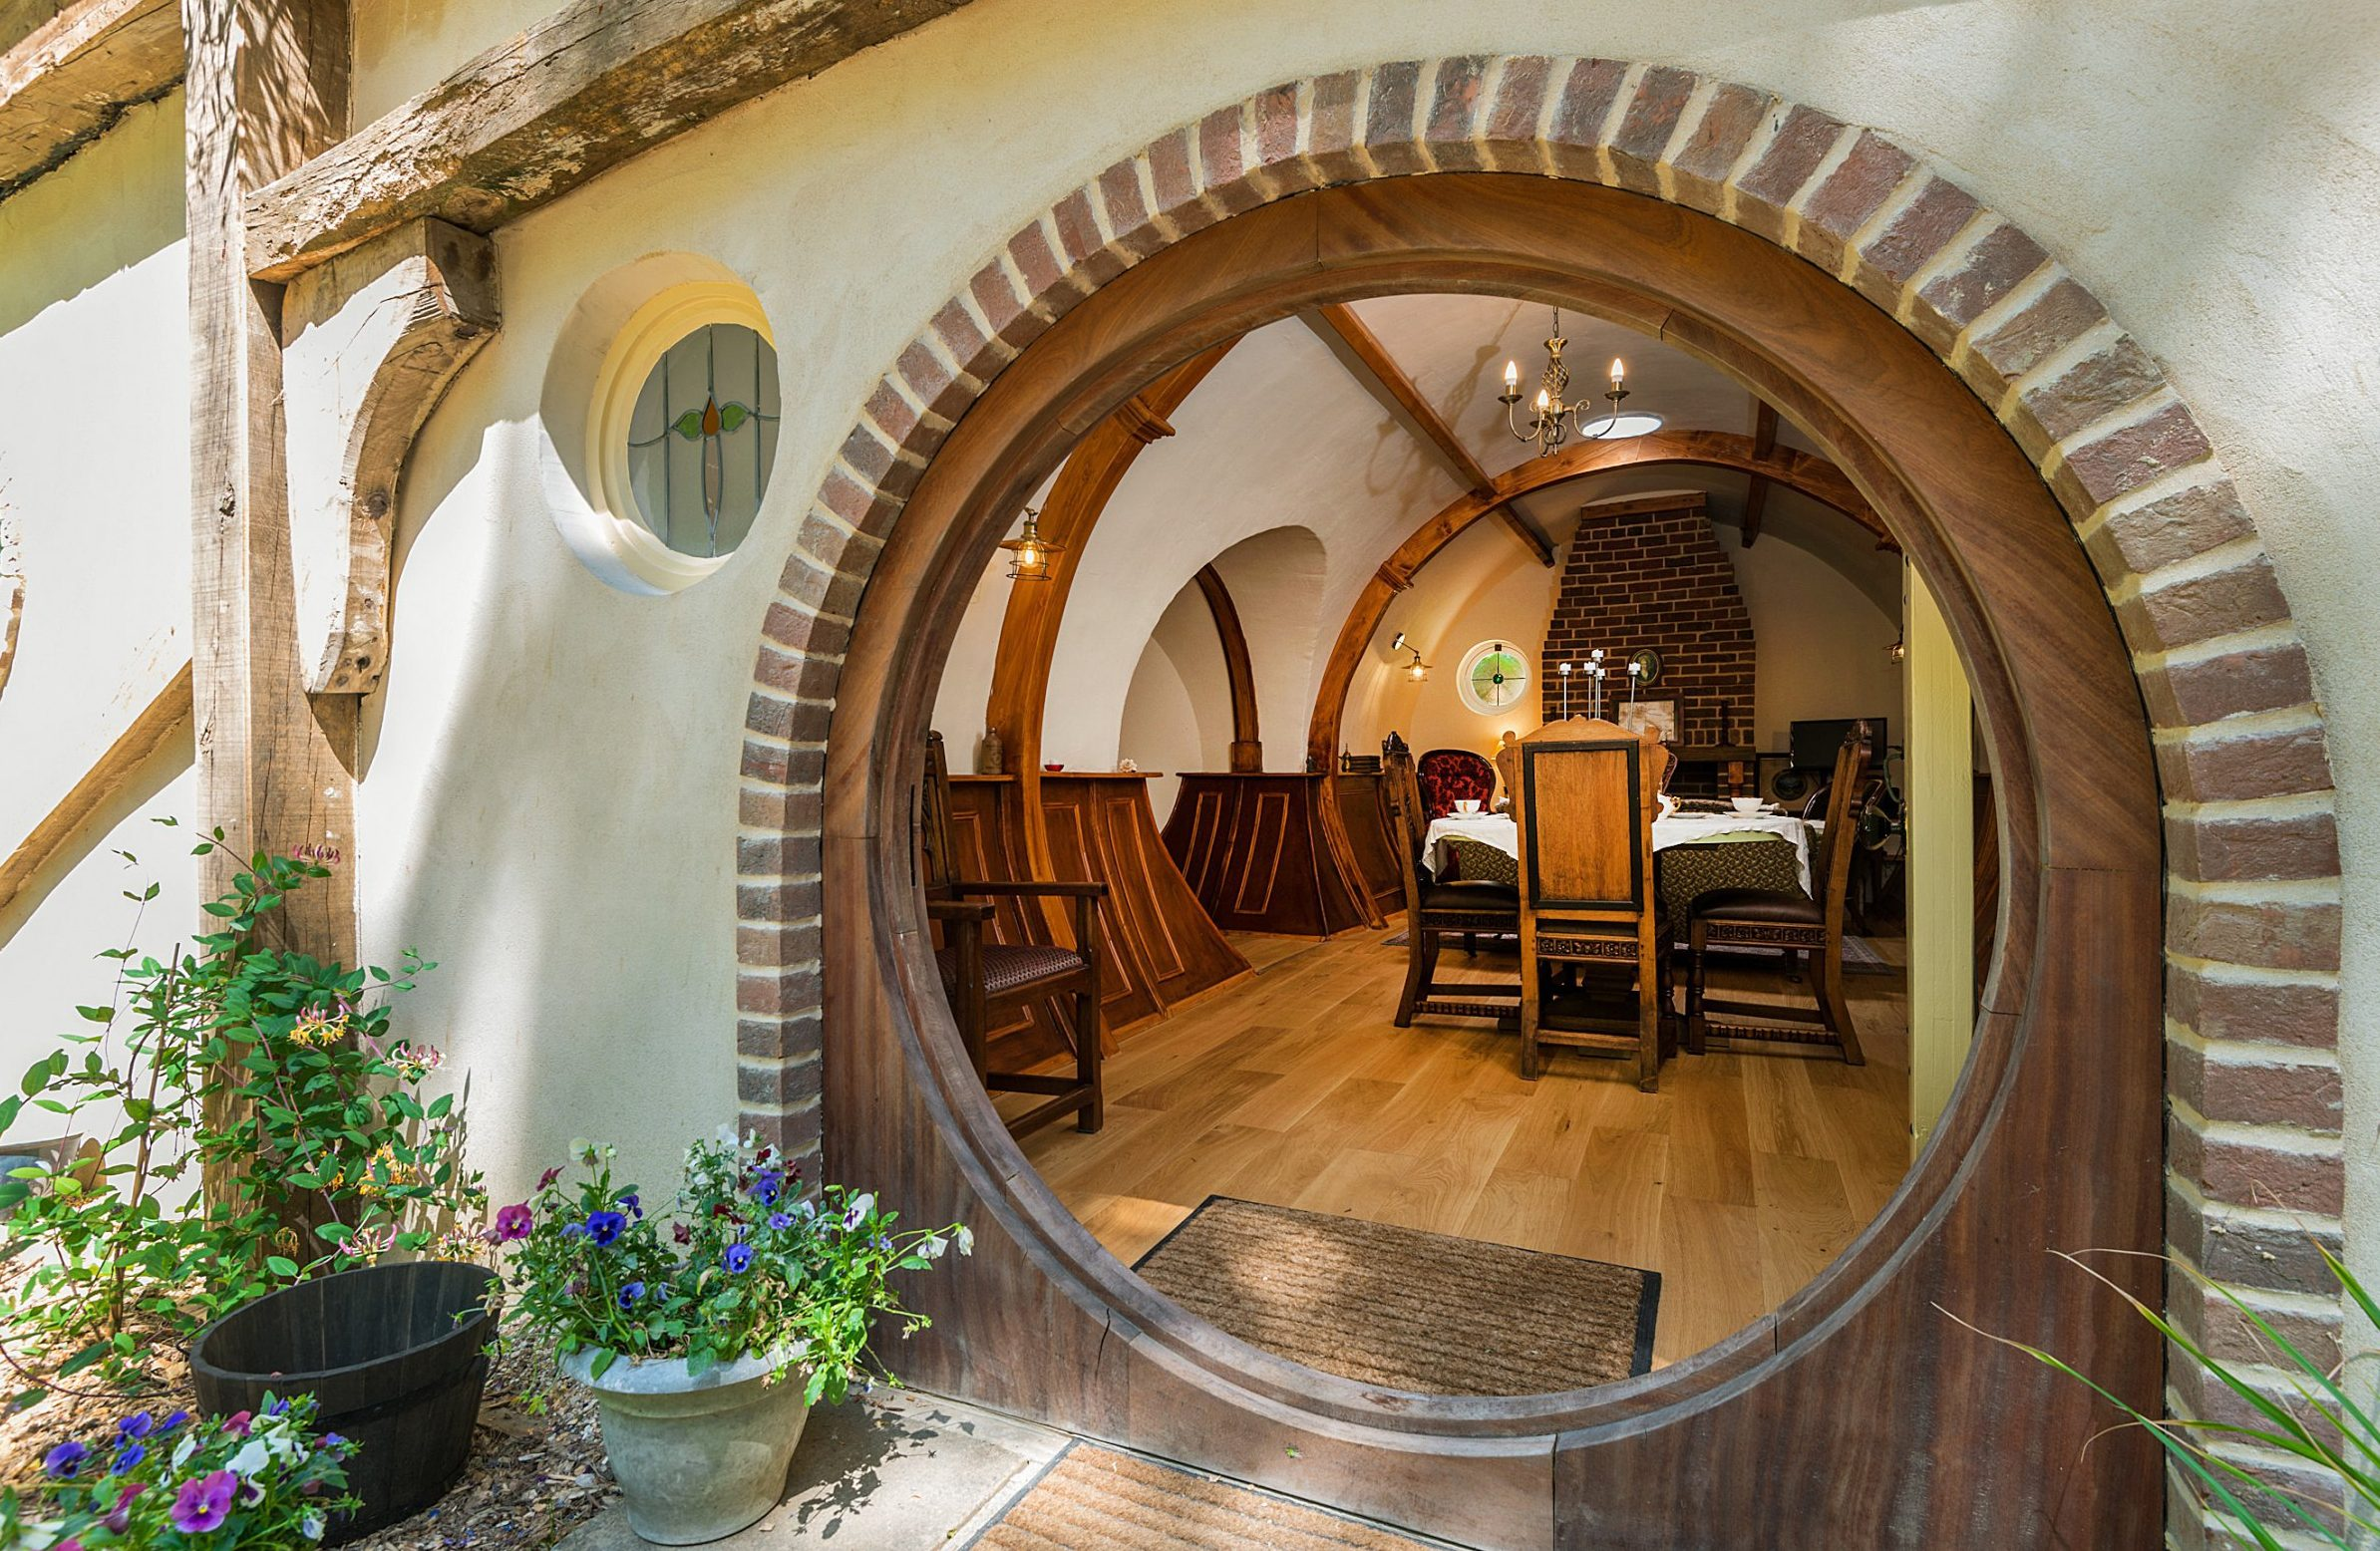 BNPS.co.uk (01202 558833) Pic : QualityUnearthed/BNPS Fans of Lord of the Rings and JRR Tolkien's fantasy world can now live like a hobbit for as little as ?100 a night. Shire Hollow is a hand-crafted Hobbit house inspired by the iconic mythical series, with its circular doors, curved walls and earthen roof. But luckily the quirky holiday let, which sits in a beautiful woodland estate in the Suffolk countryside, is human-sized and can sleep up to four guests.